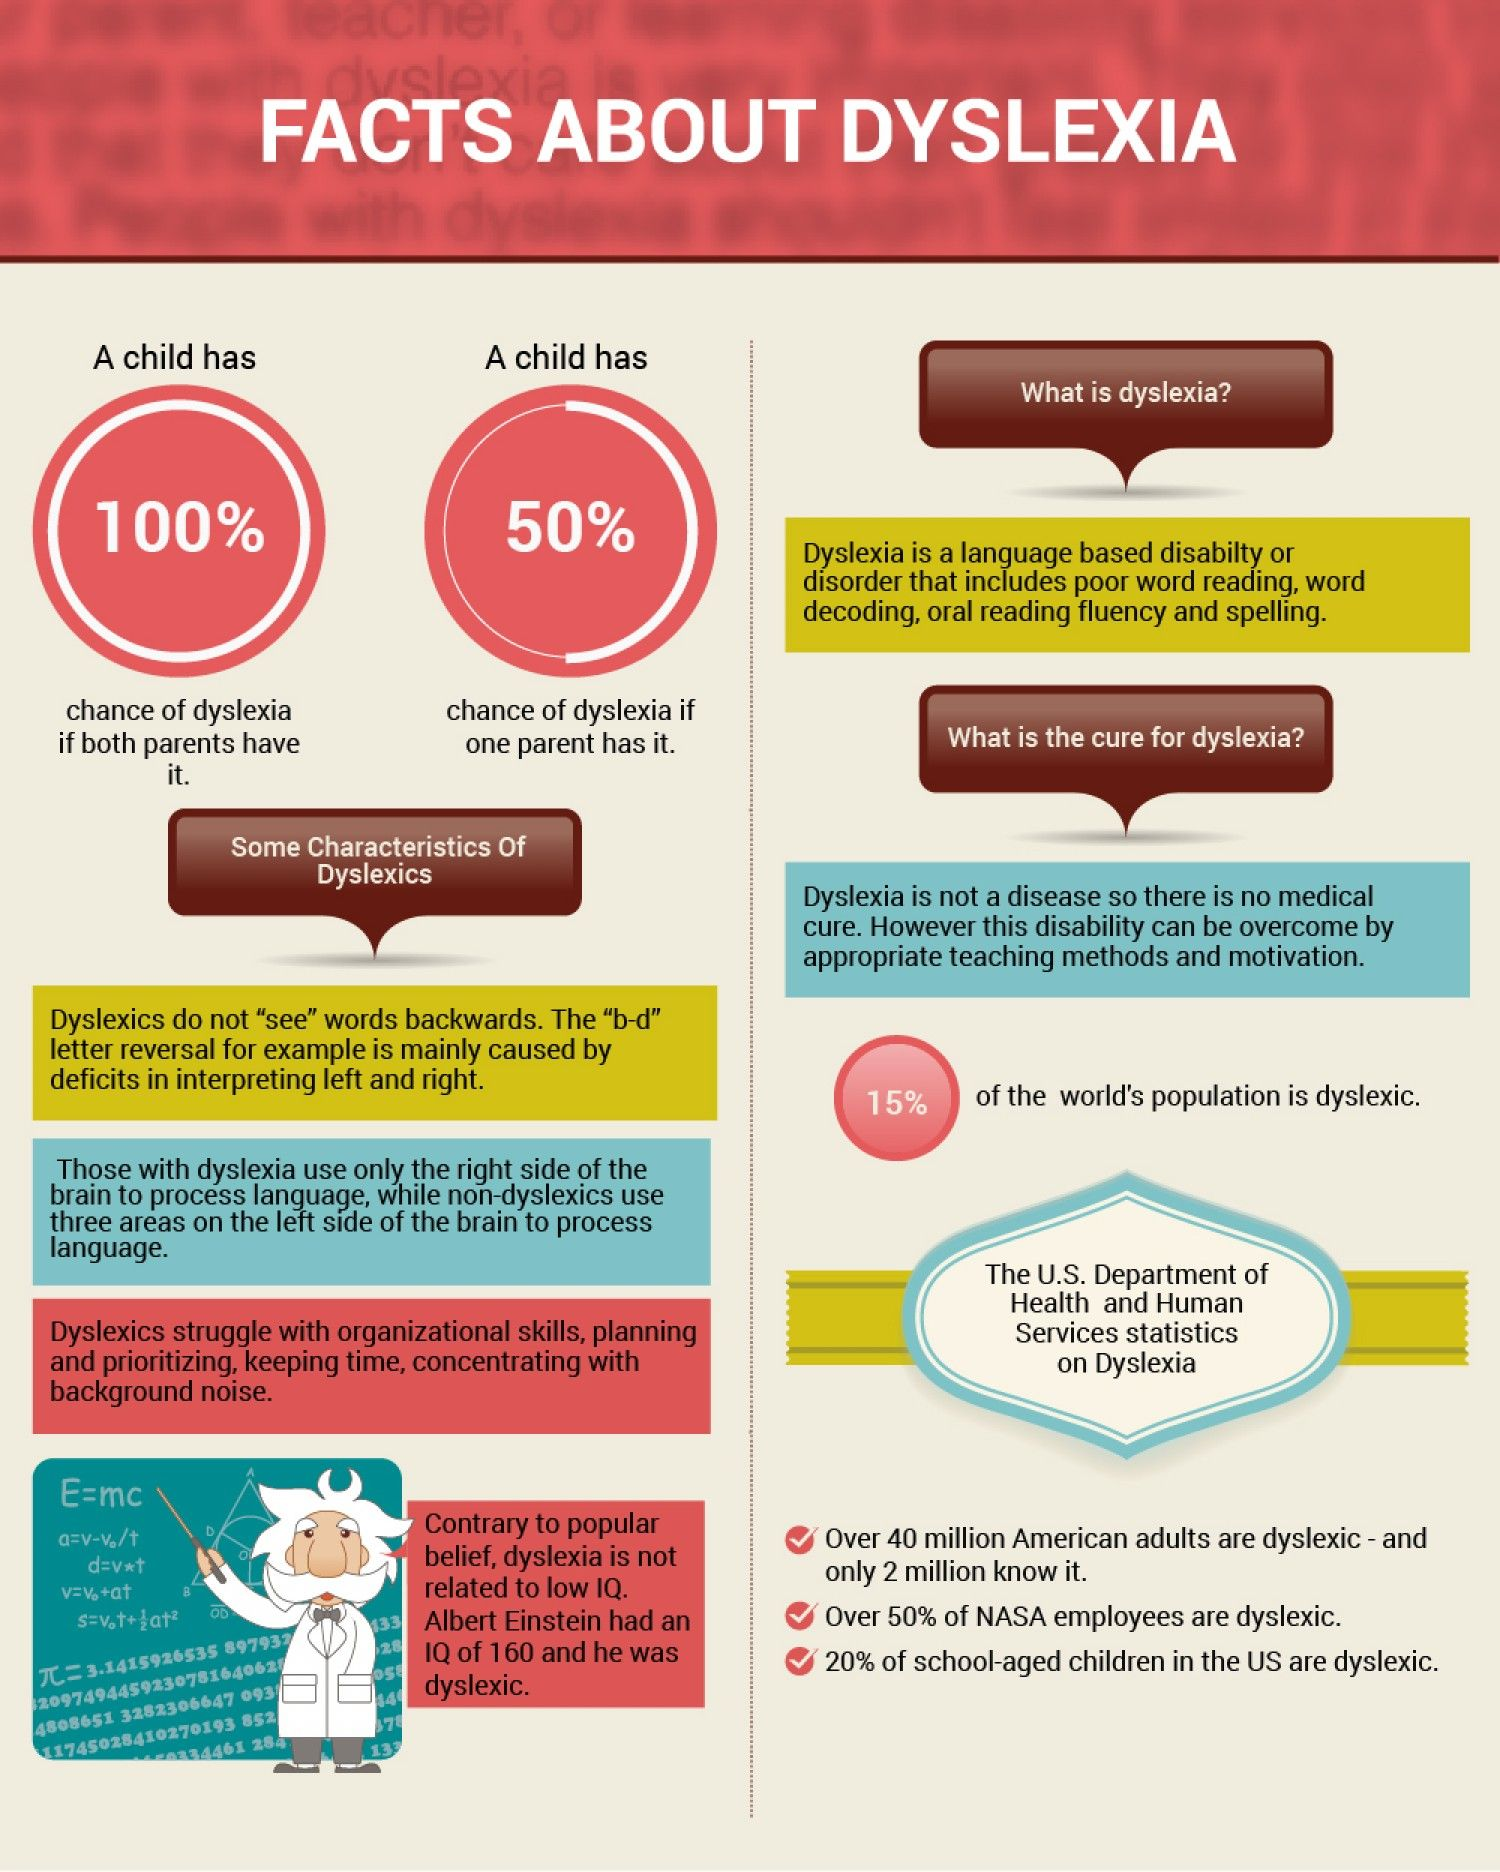 Some Facts About Dyslexia Infographic